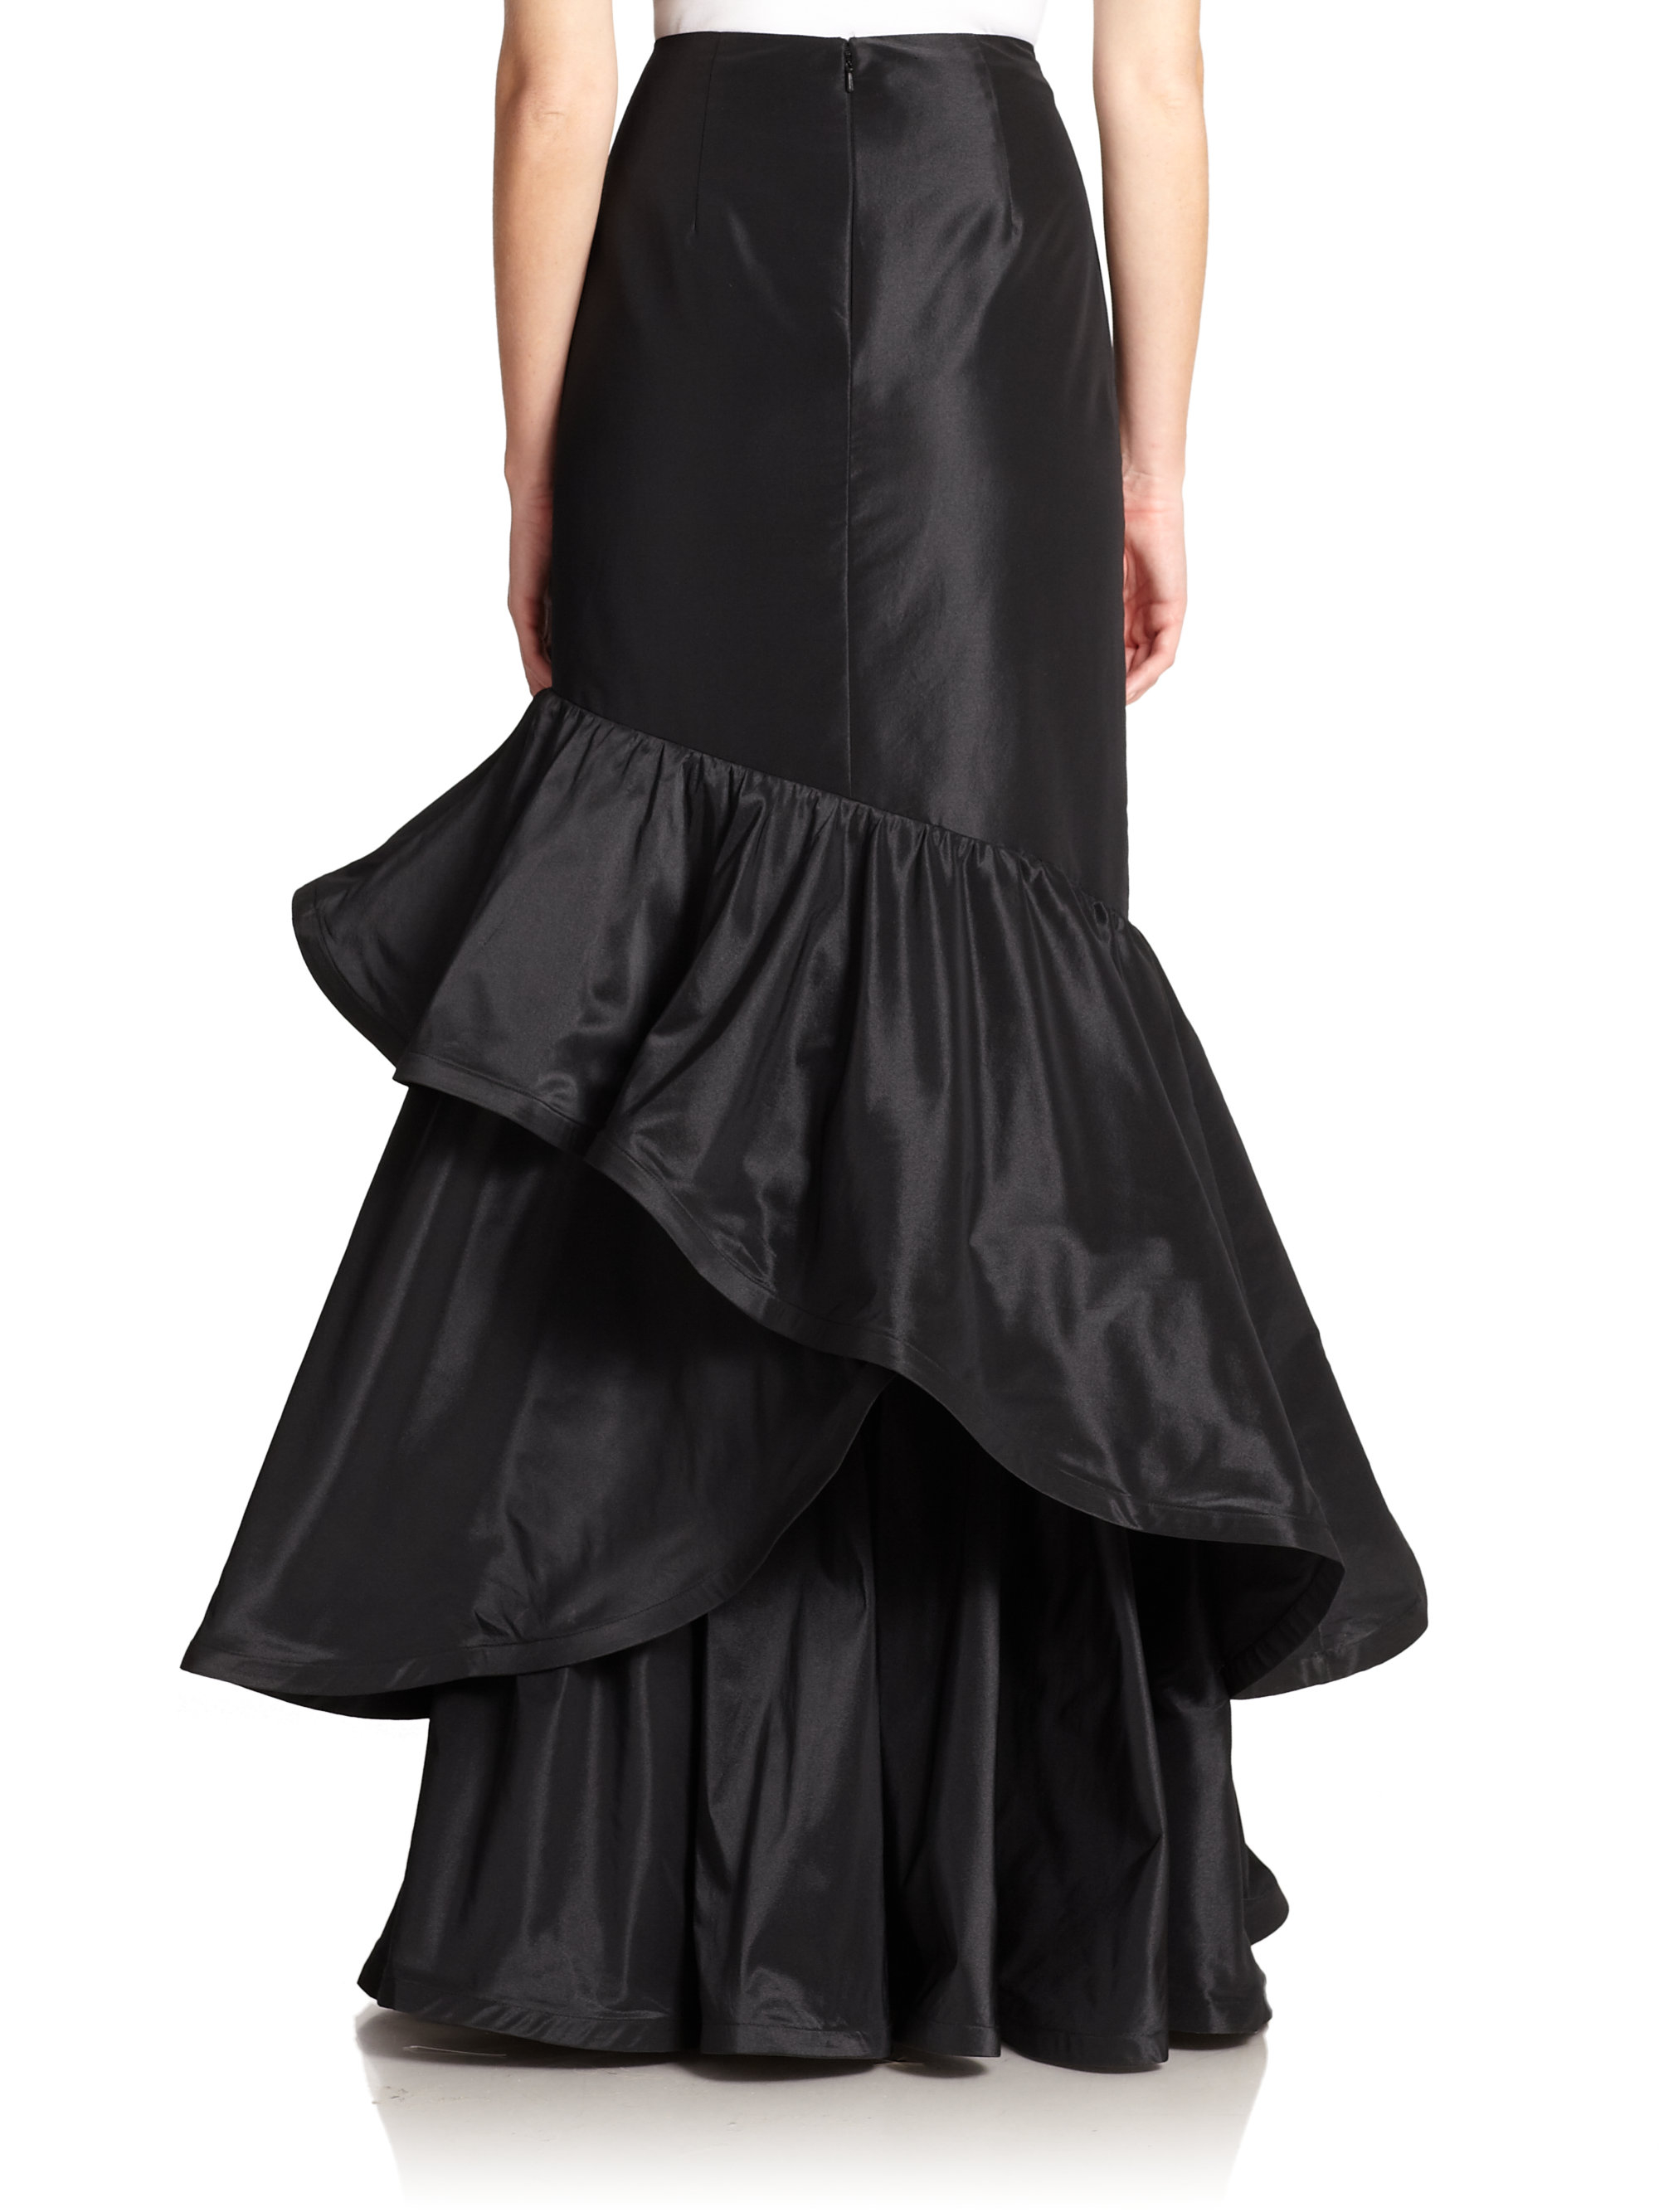 Find long ruffle skirt at ShopStyle. Shop the latest collection of long ruffle skirt from the most popular stores - all in one place.